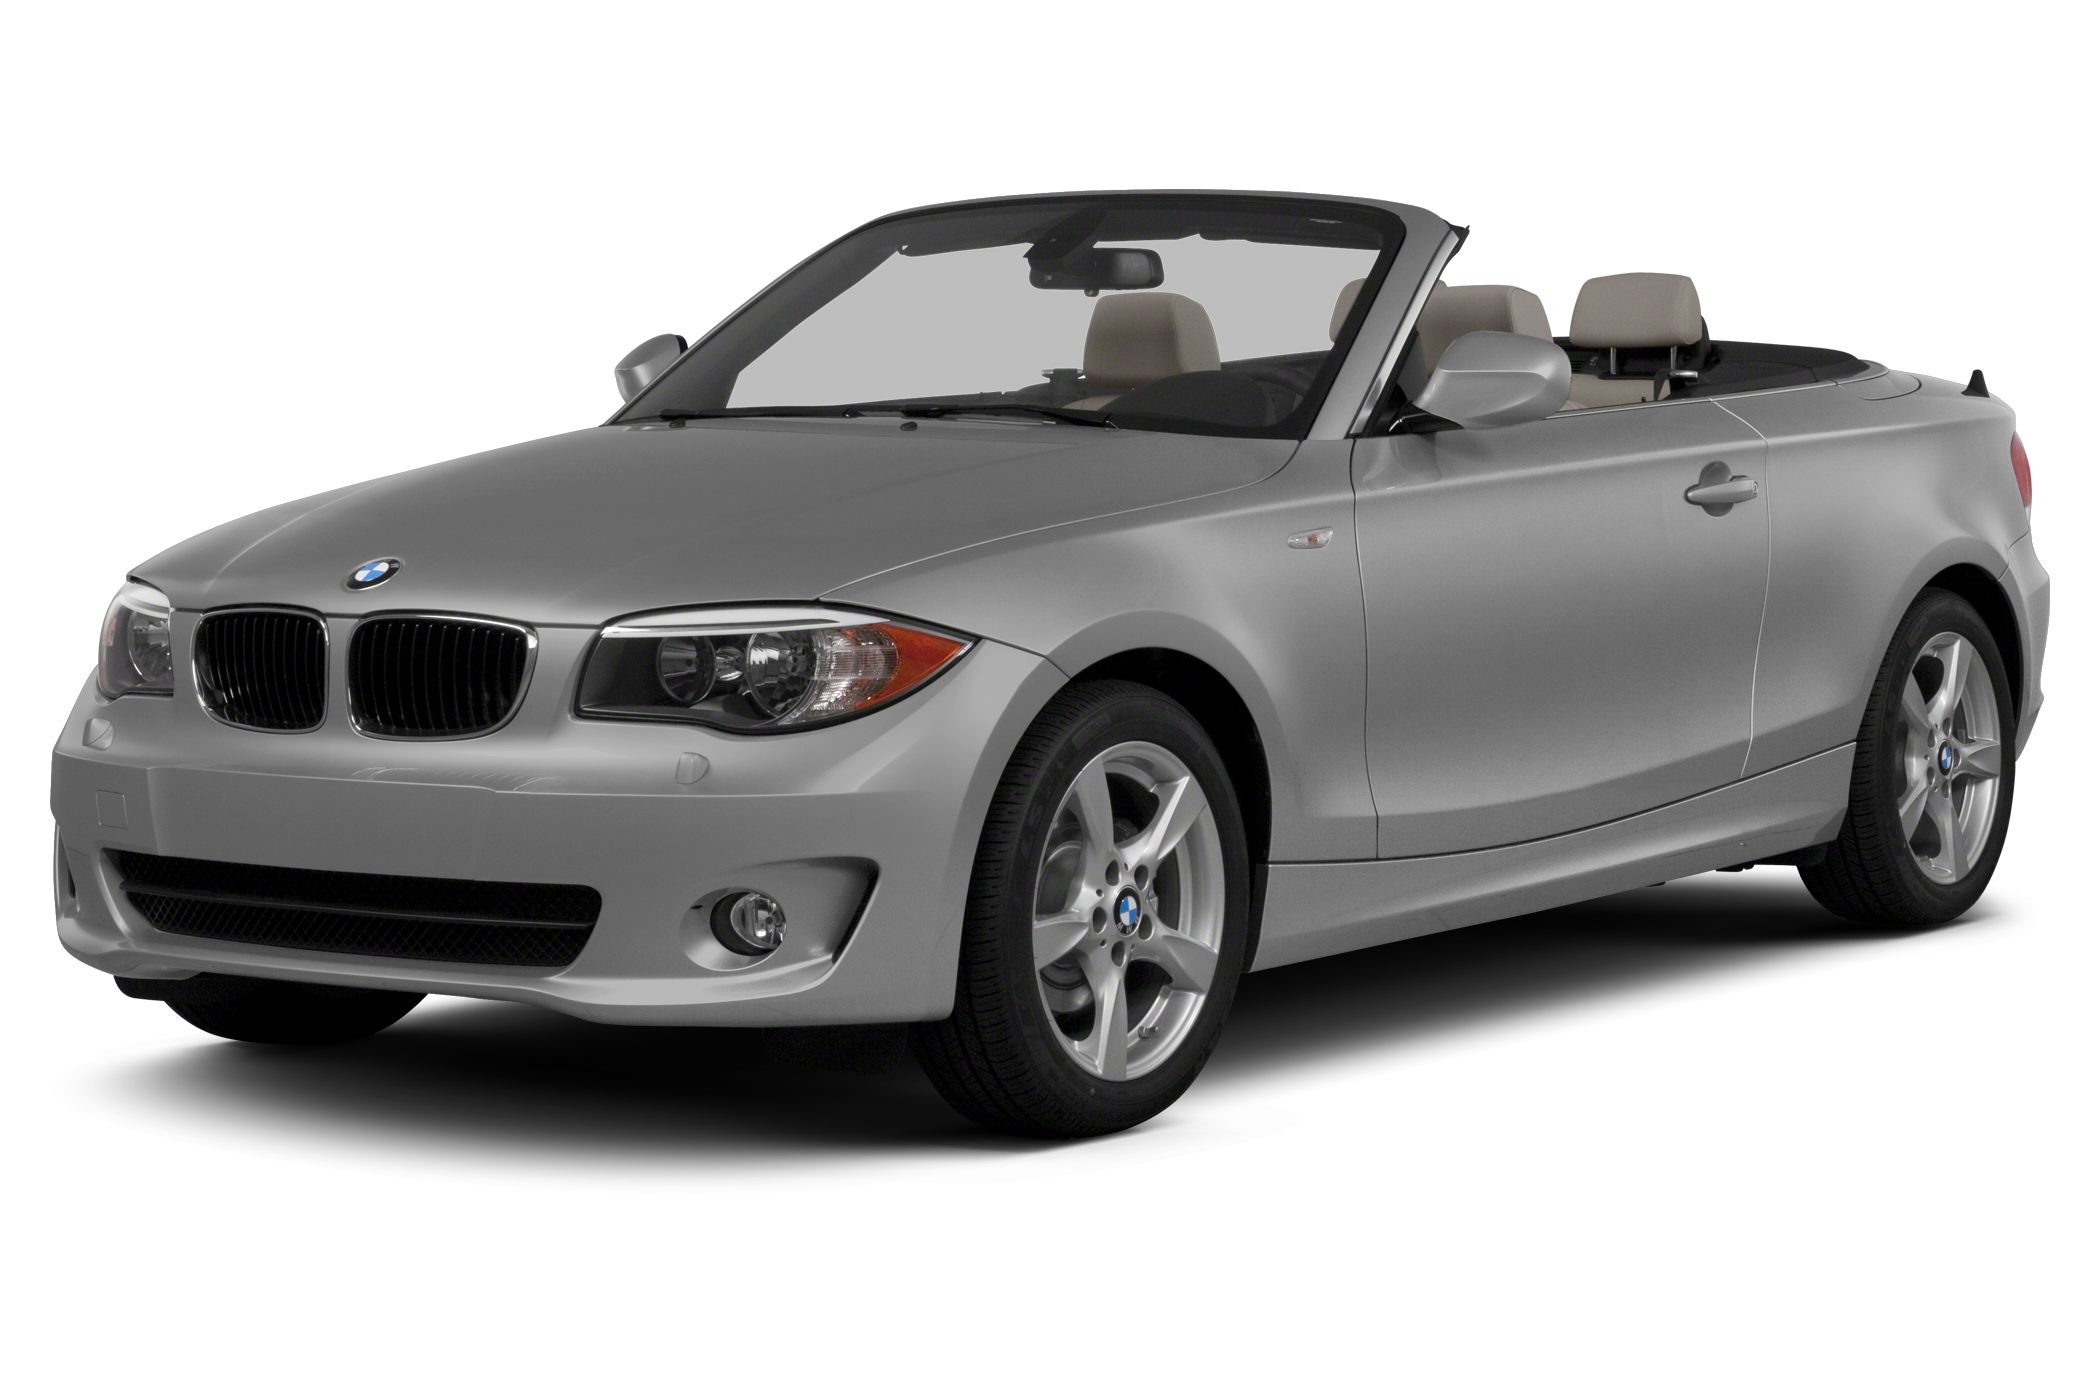 2013 BMW 1 Series  Voted 1 Preowned Dealer in Metro Boston 2013  2014 and Voted Best Deals -201